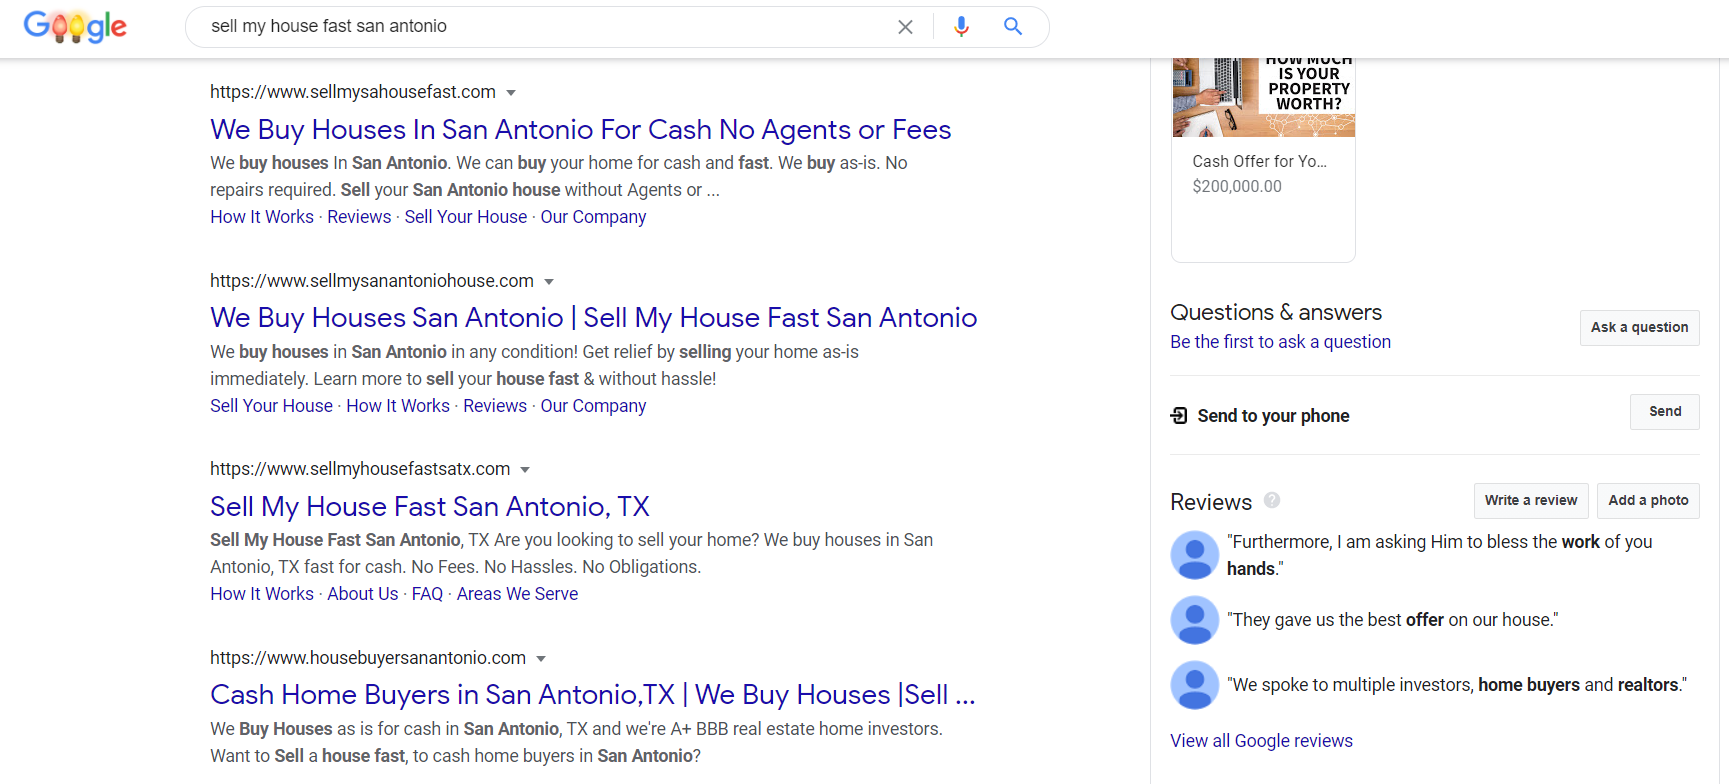 Google search results for sell my house fast san antonio